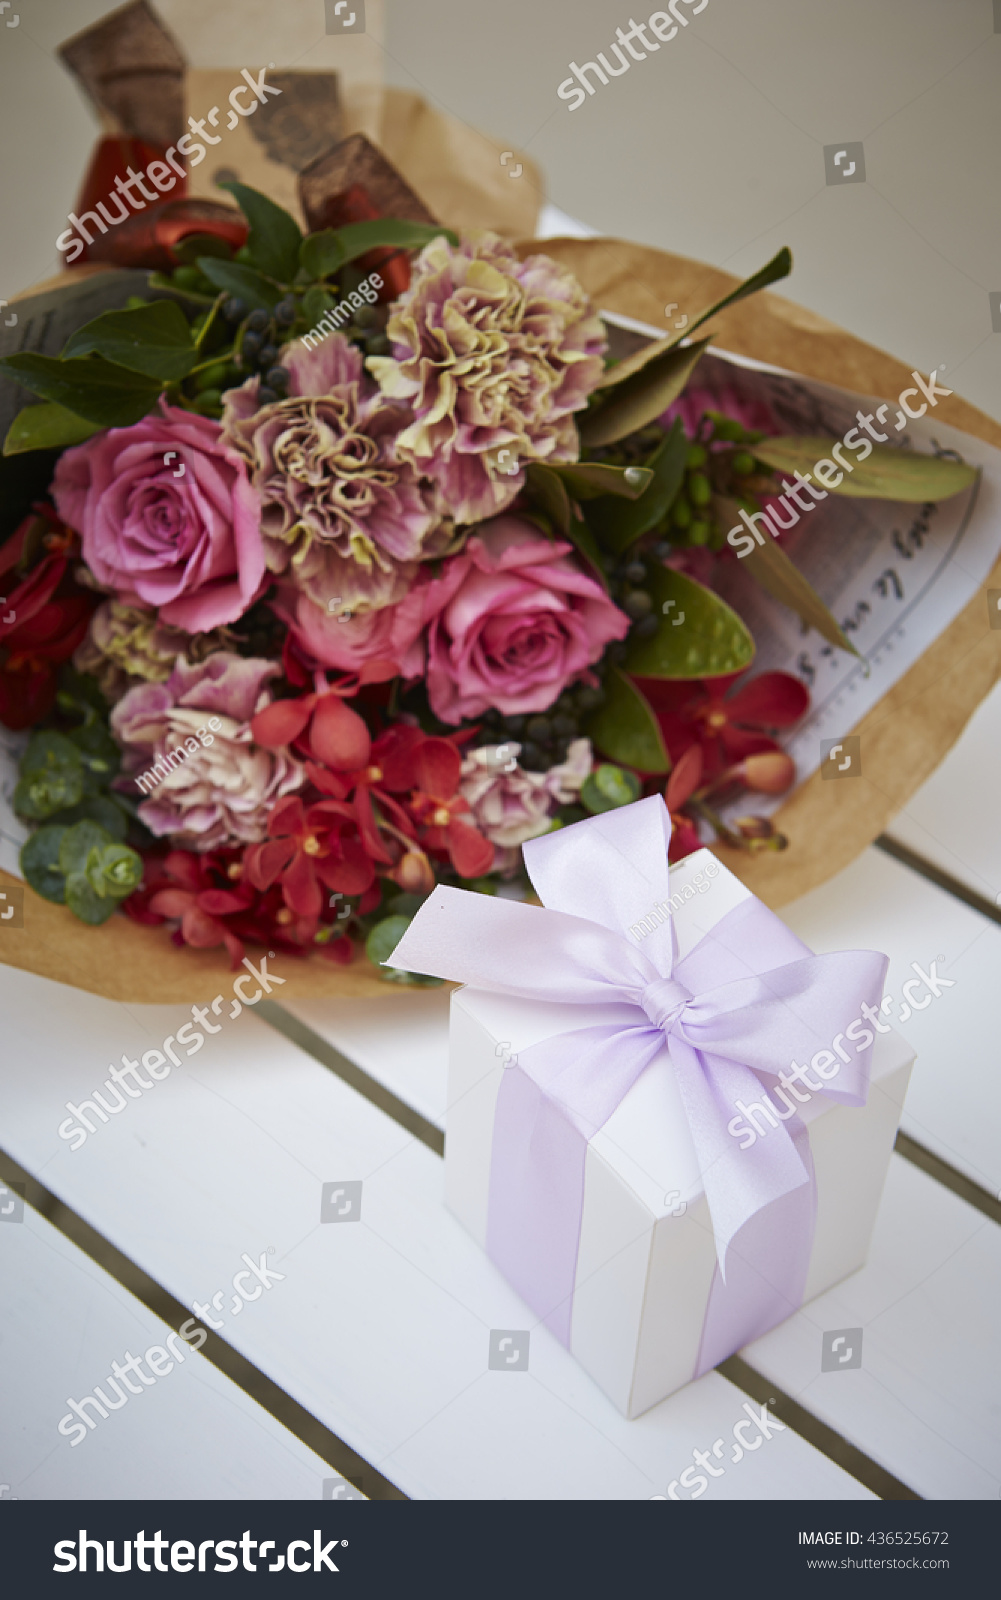 Flower bouquet gift boxes stock photo royalty free 436525672 flower bouquet with gift boxes izmirmasajfo